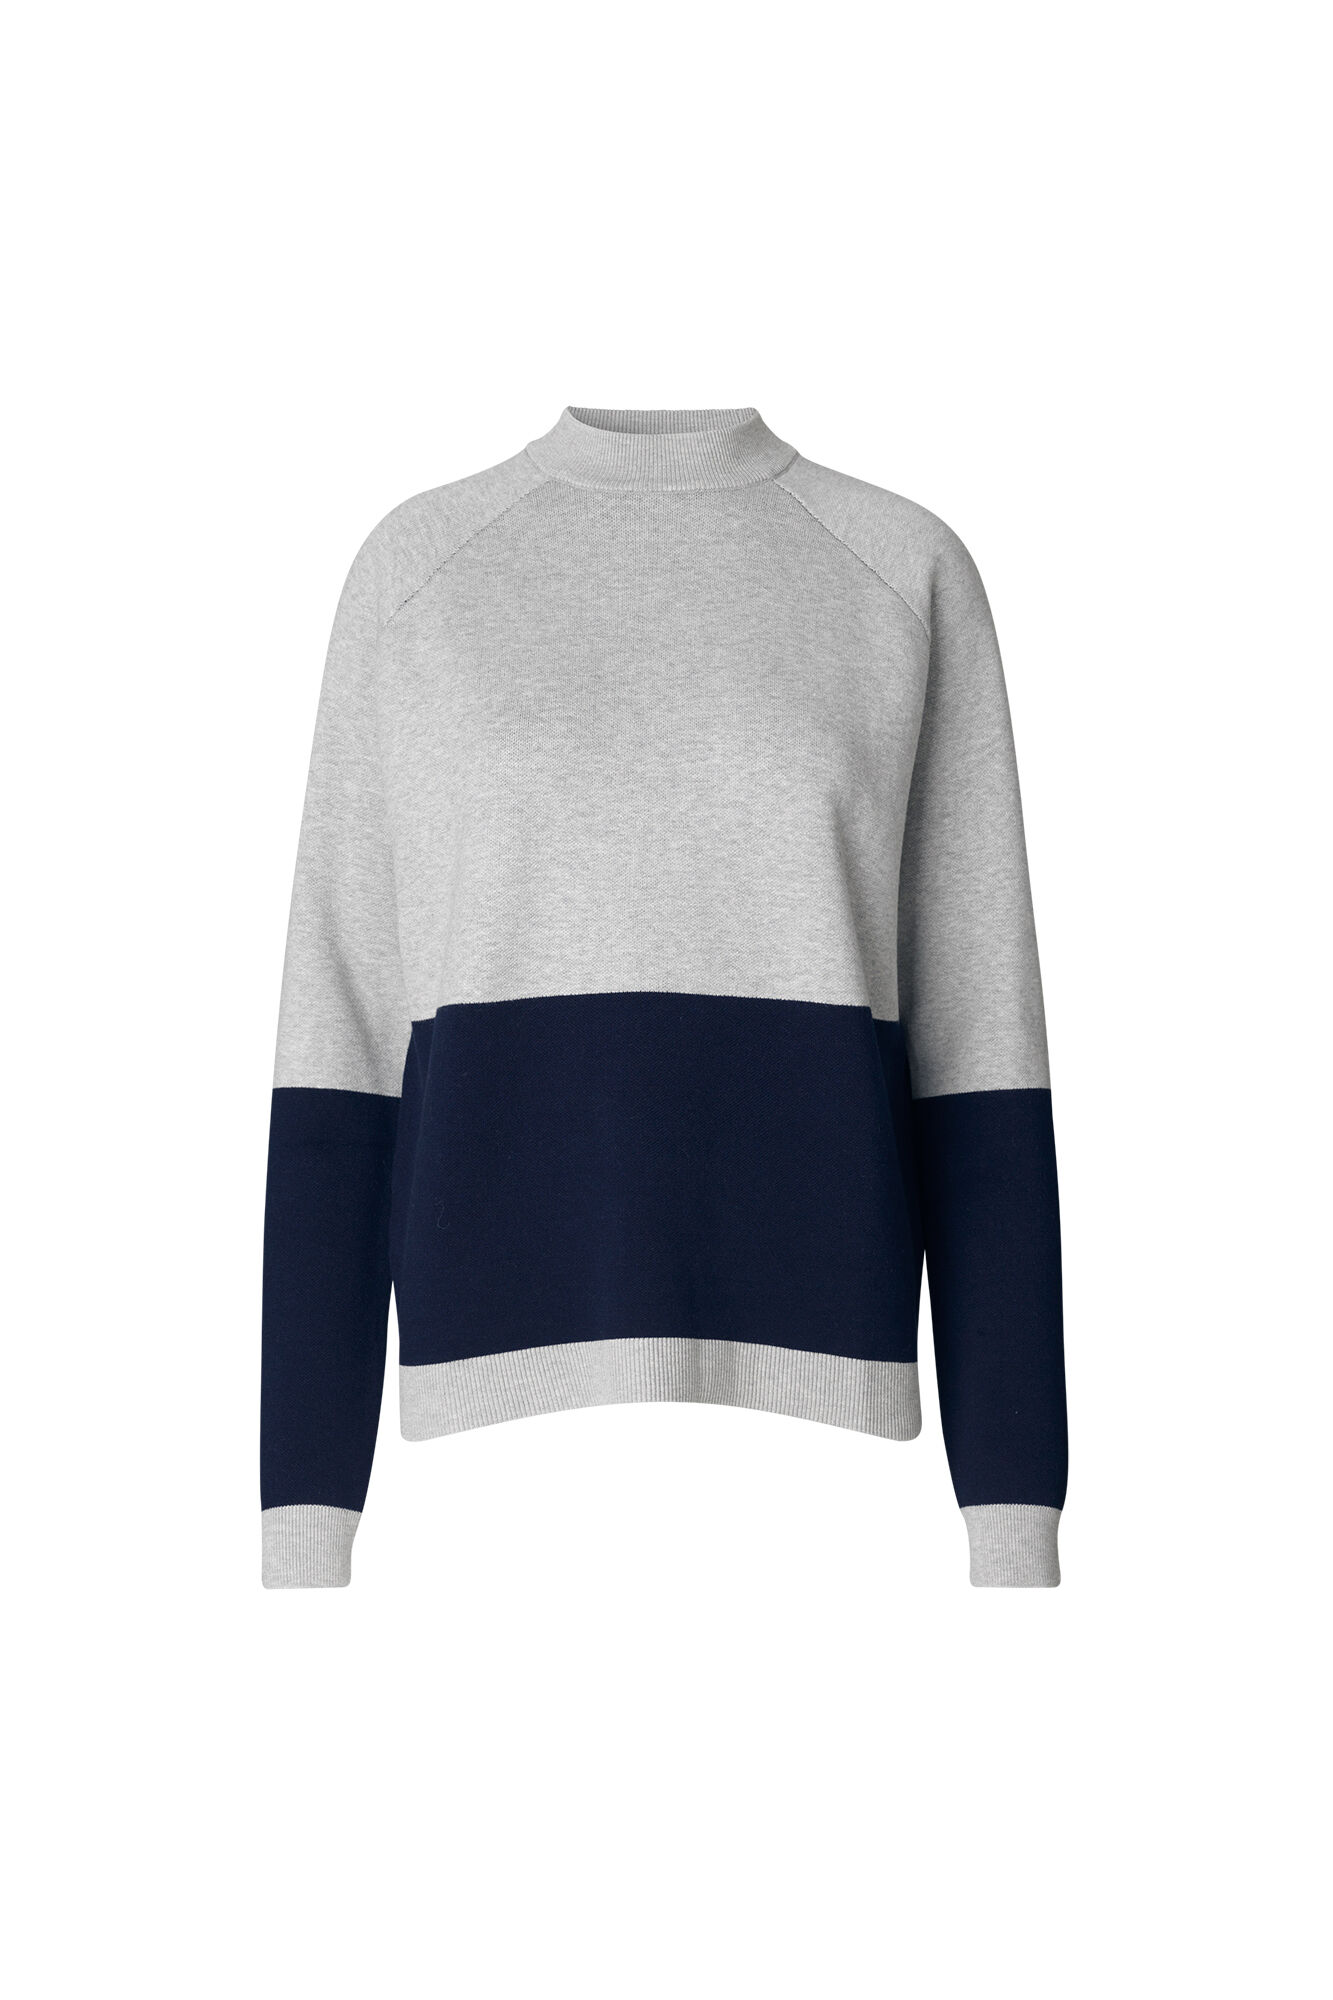 ENPETROL LS KNIT BLOCK 5153, LGM/NEW NAVY